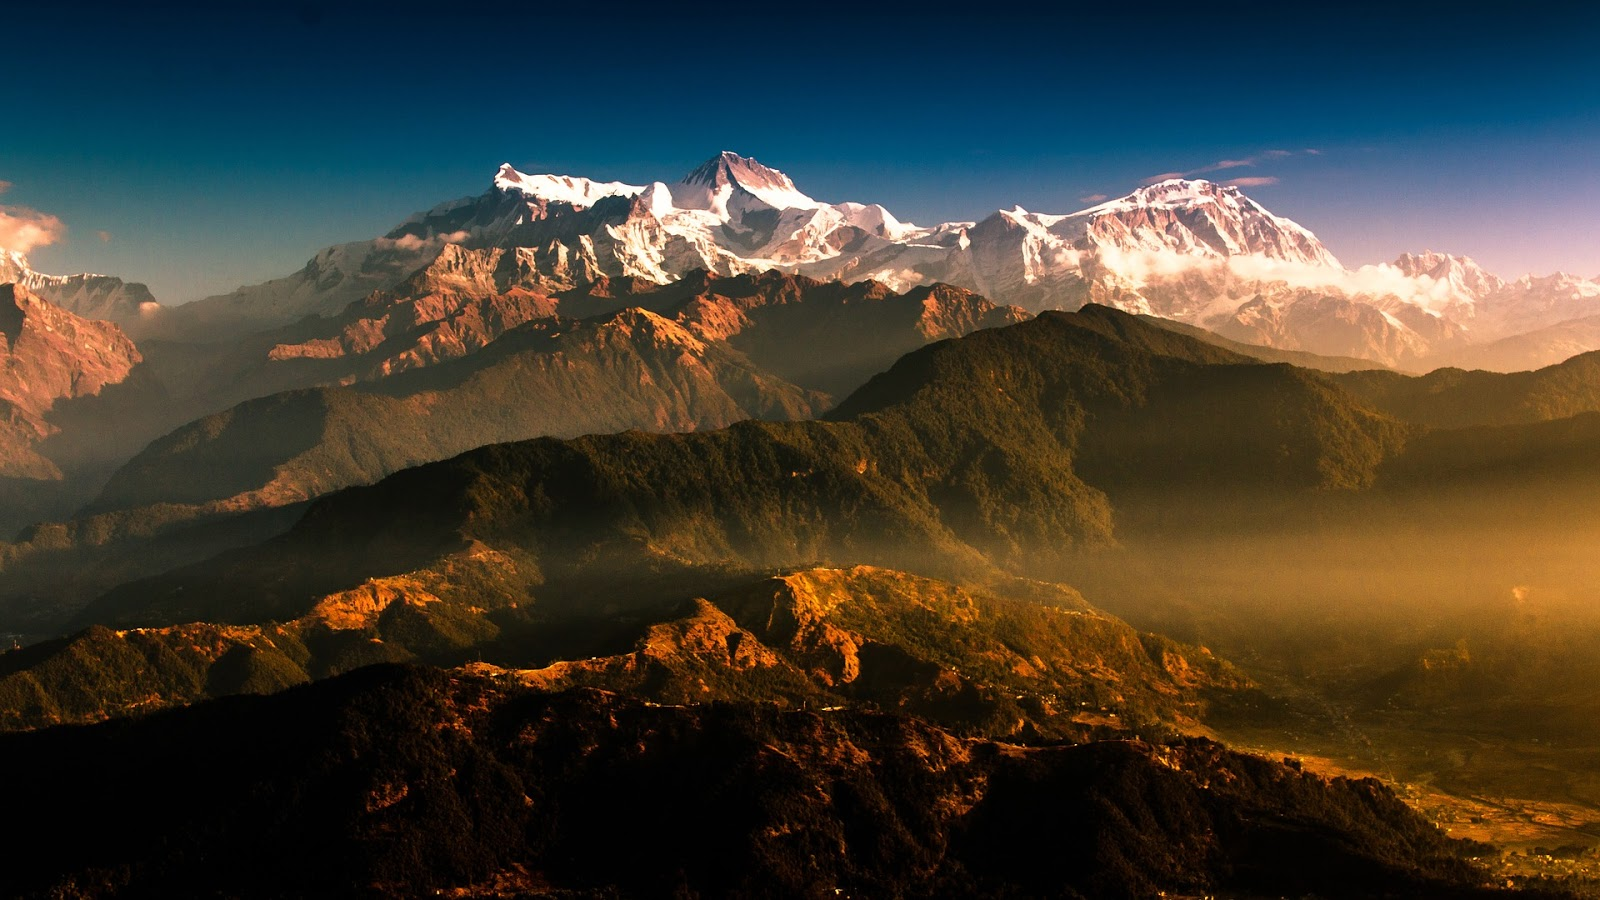 a landscape view of the Himalayas during sunset